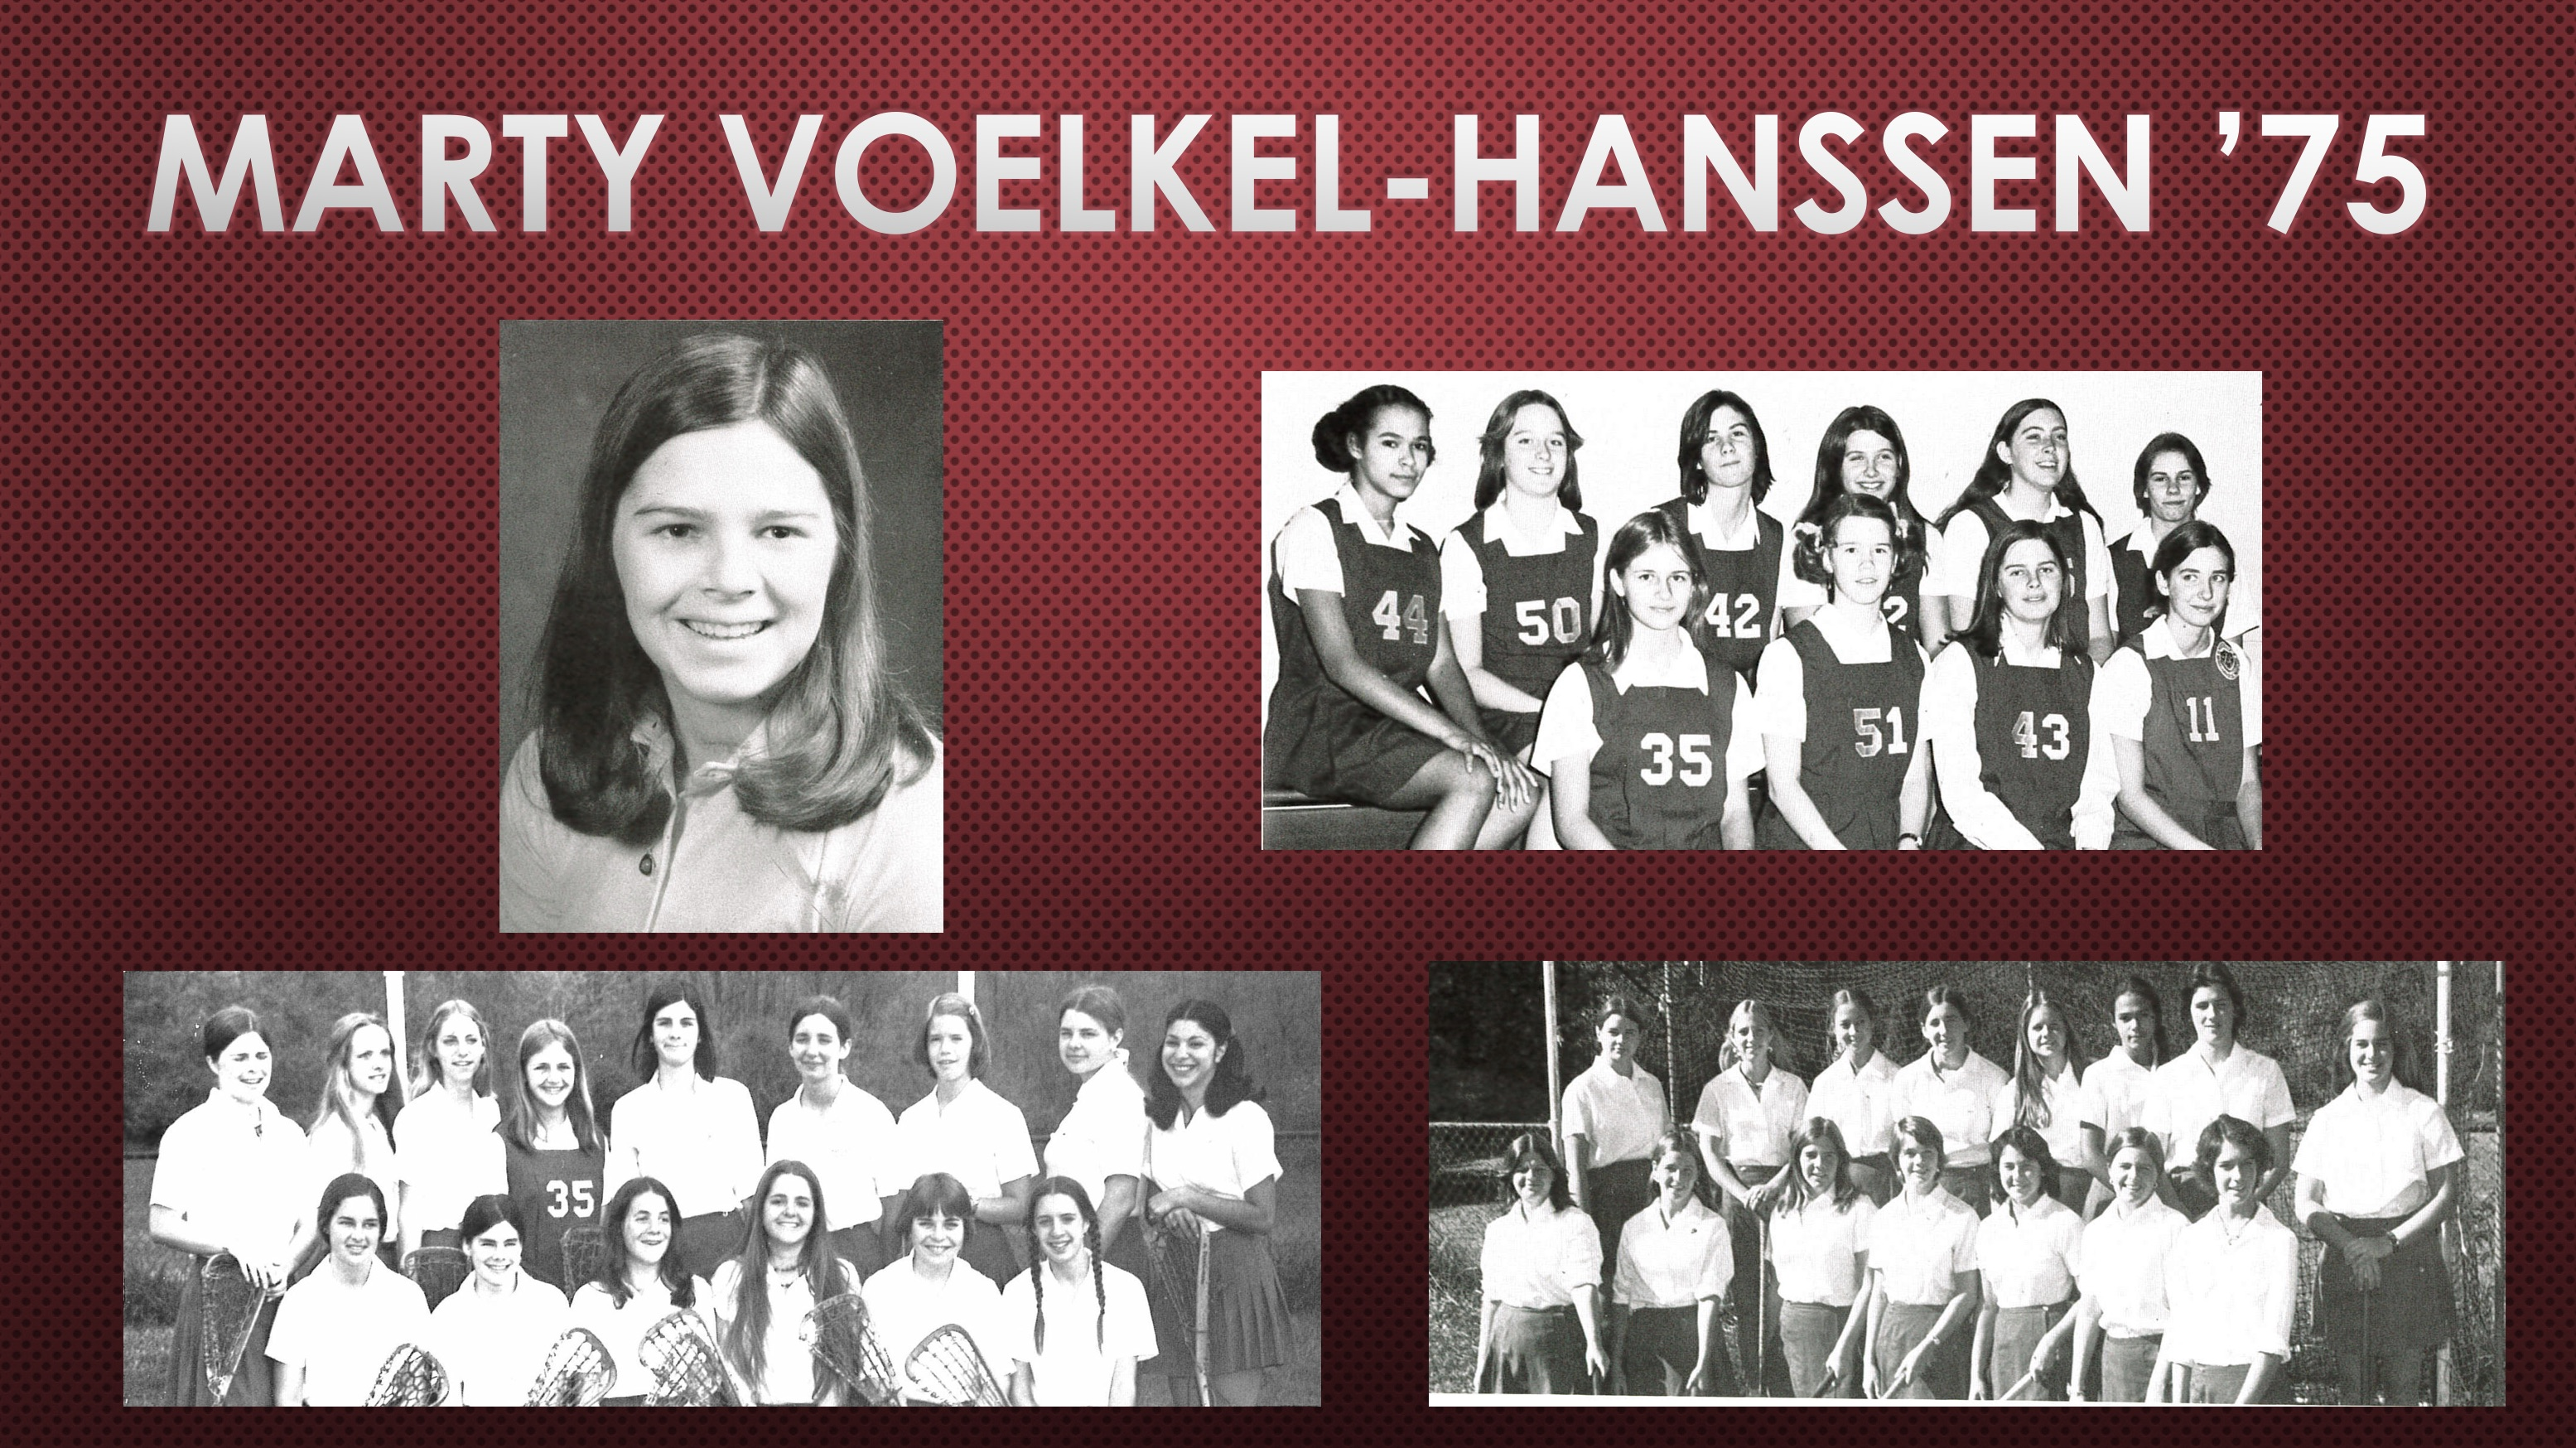 2018 Athletic Hall of Fame Inductee: Marty Voelkel-Hanssen '75